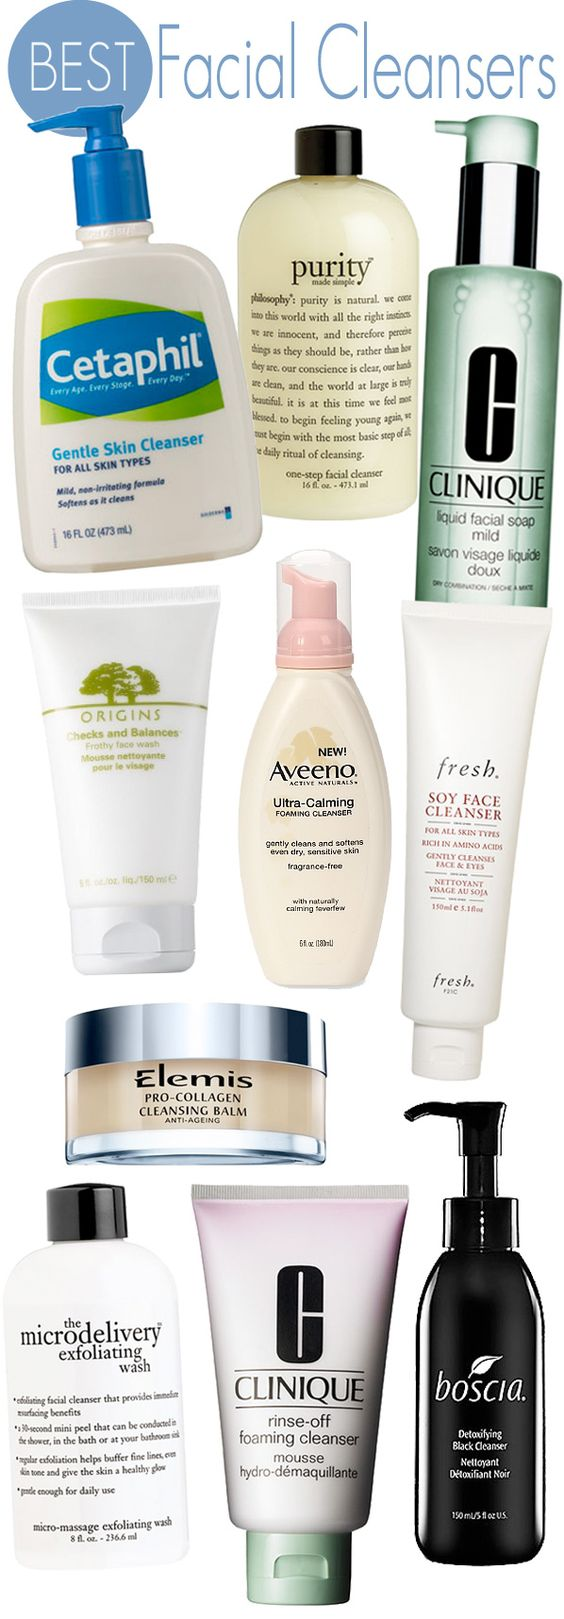 The best facial cleansers. I use Clinique and love it, but going to try out Cetaphil.